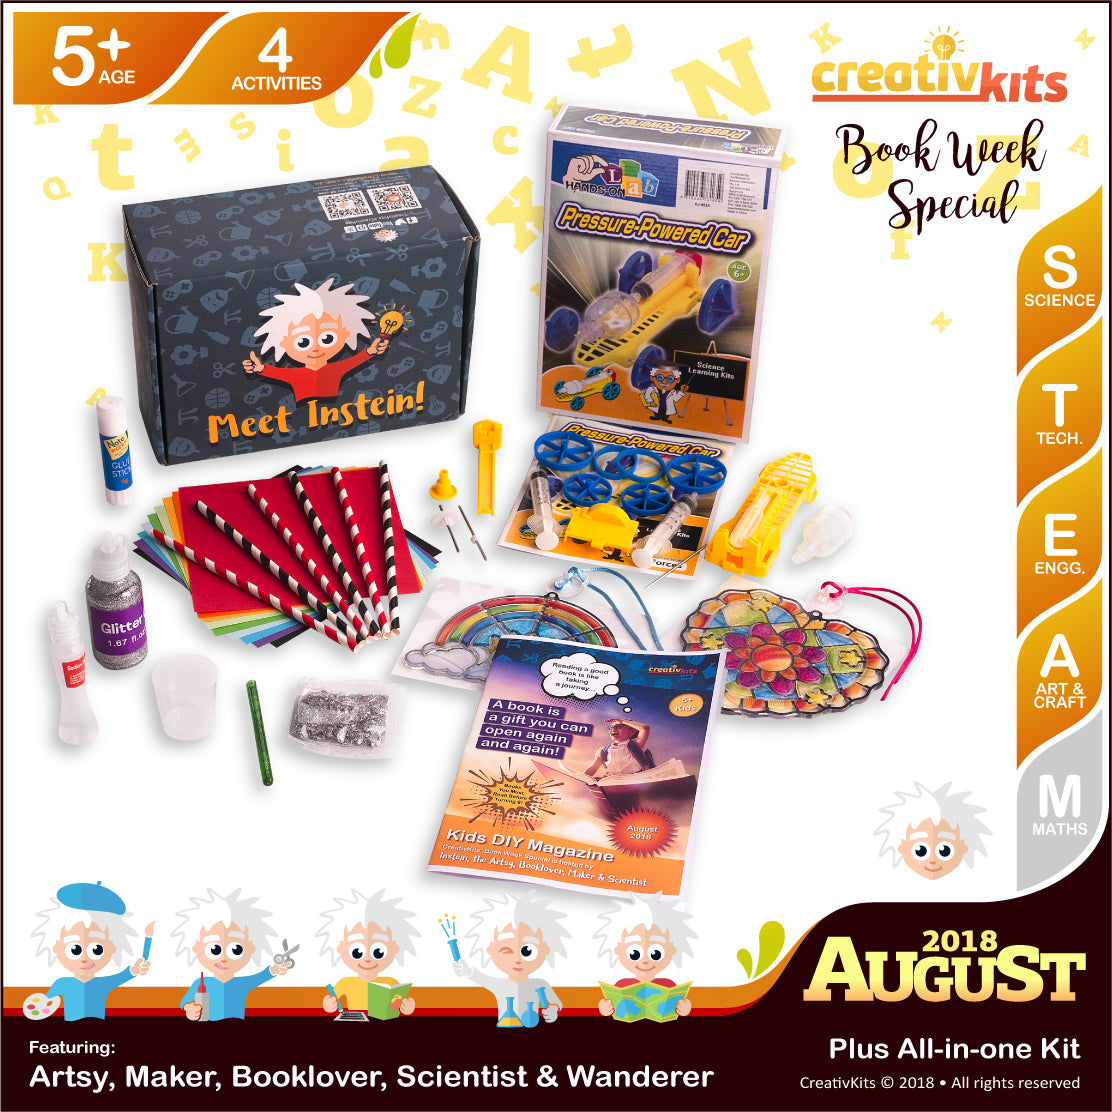 Holographic Slime, Air Powered Car, Tulip Craft and Glass Sun-catchers | August Plus Kit | Age 5+